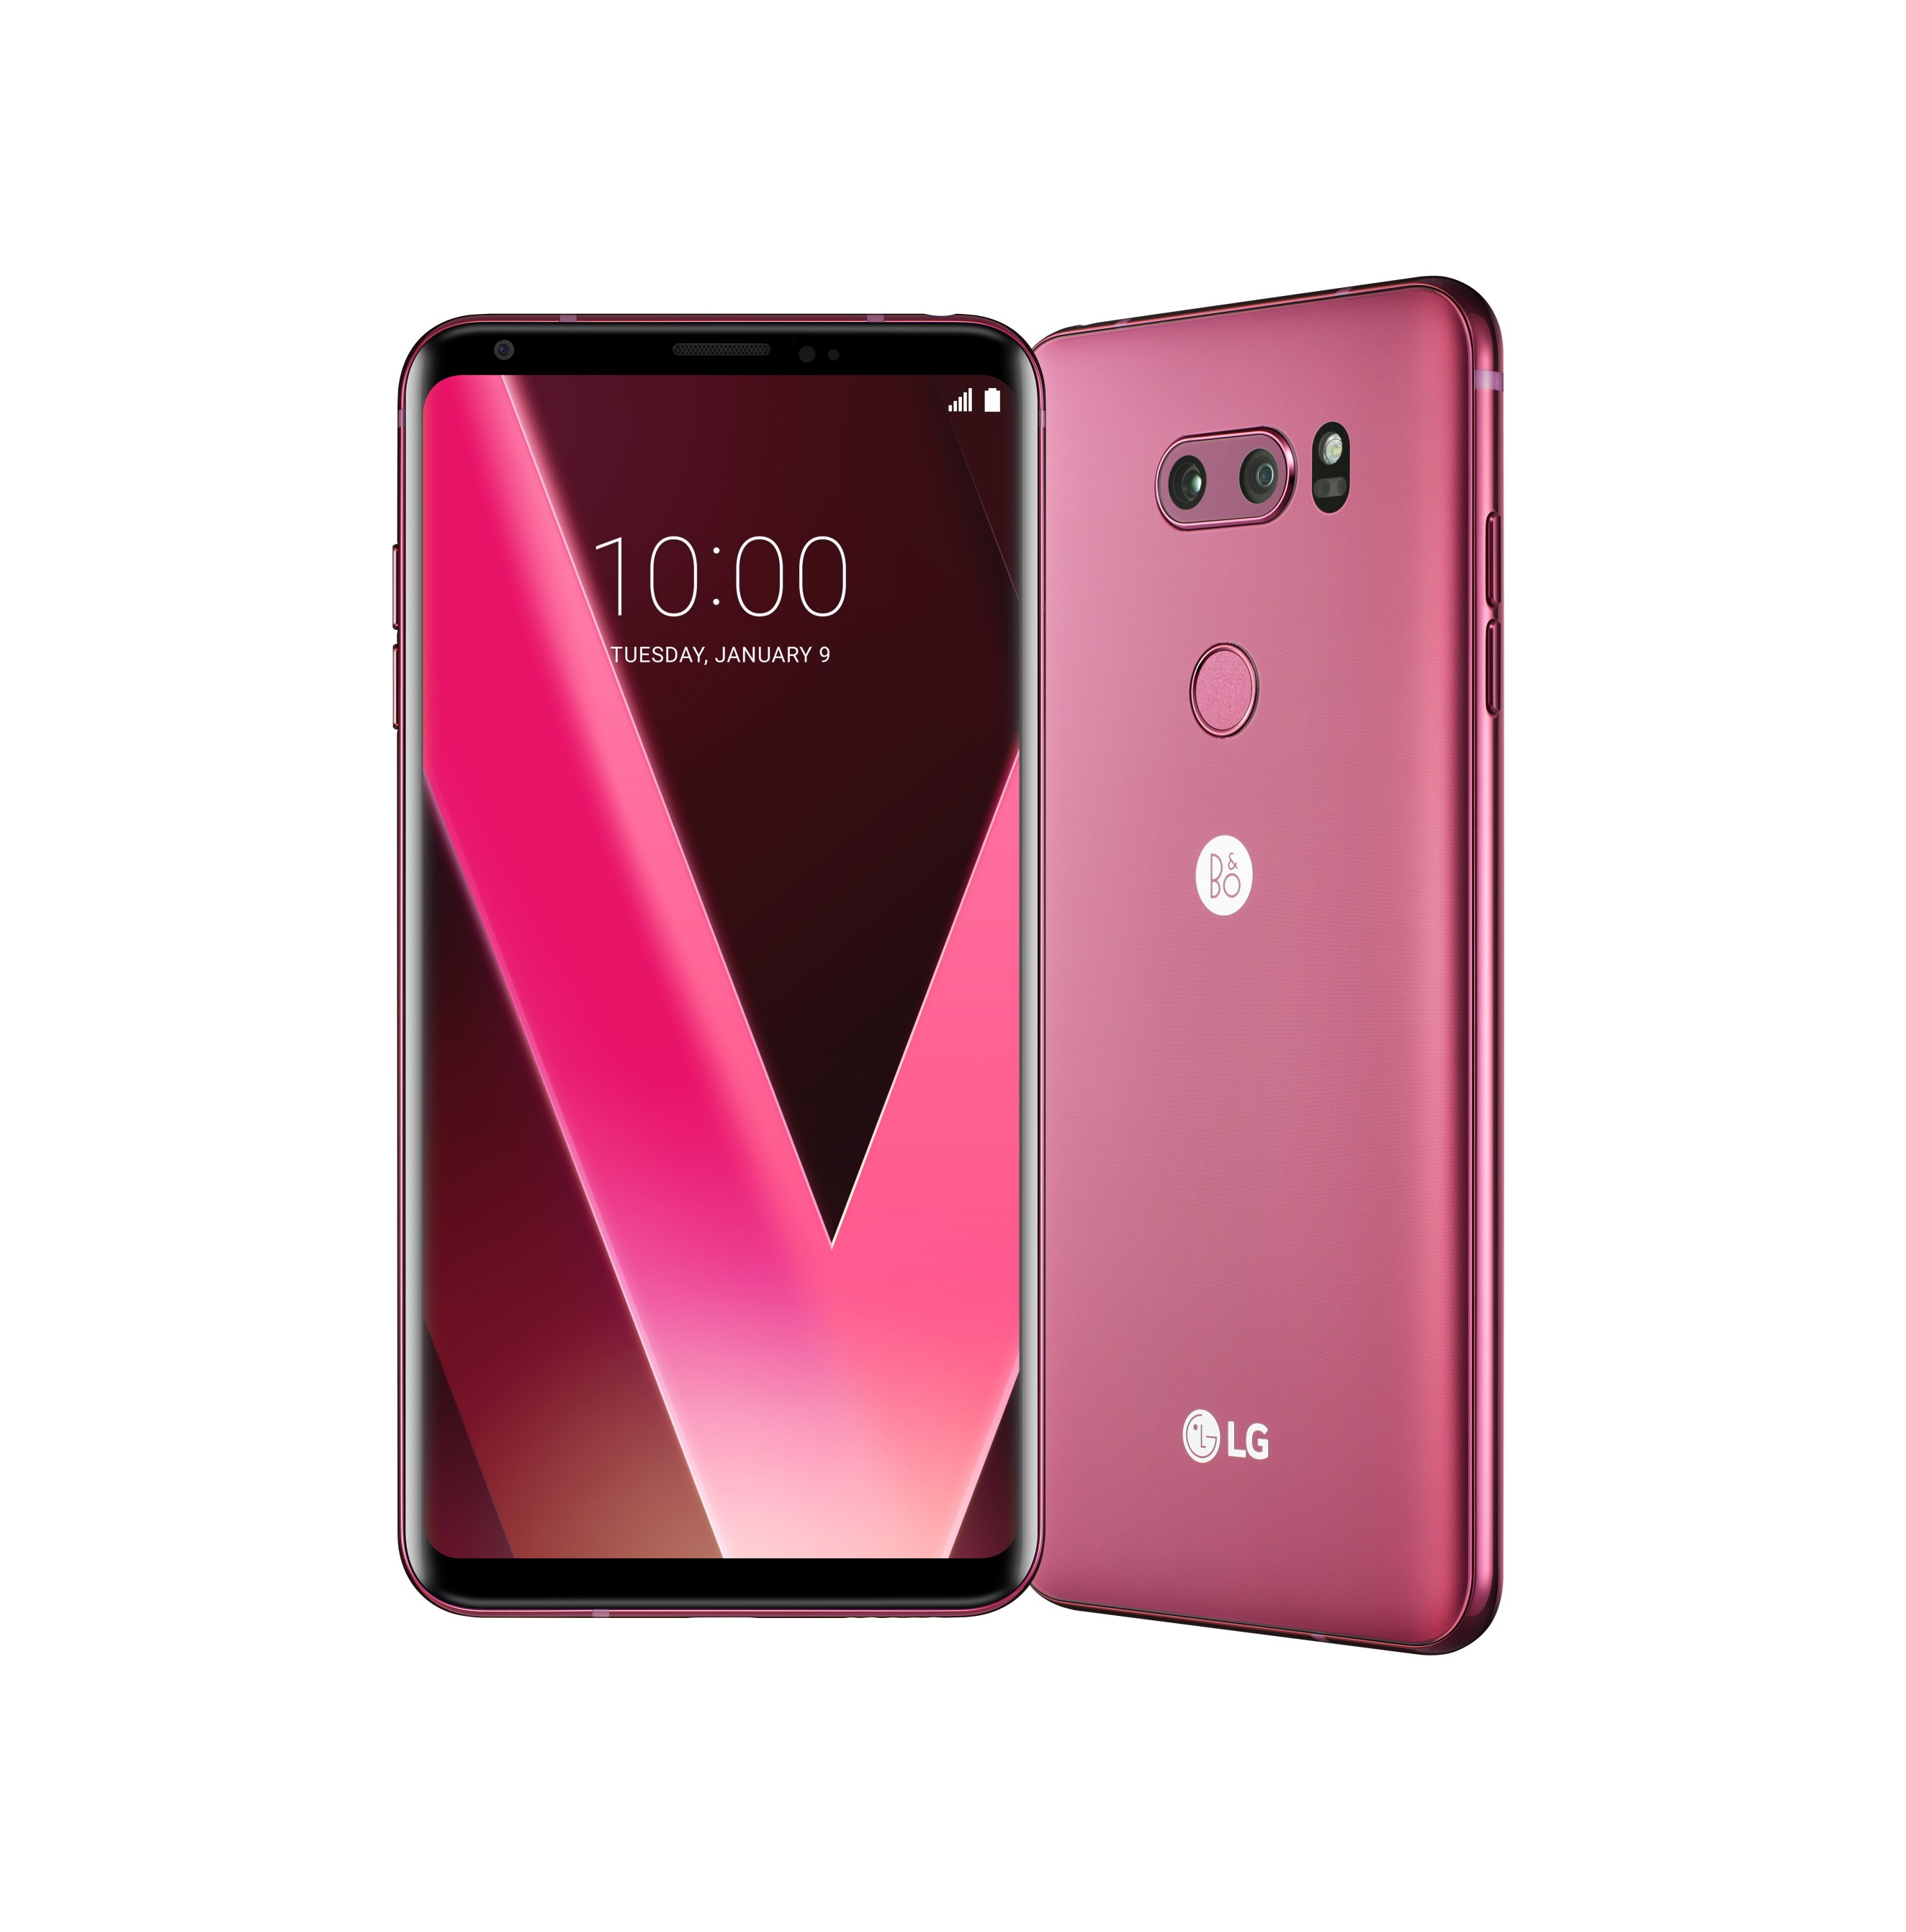 Two LG V30 Raspberry Rose smartphones side-by-side, one facing forward with display visible, and the other facing away and positioned at a slight angle